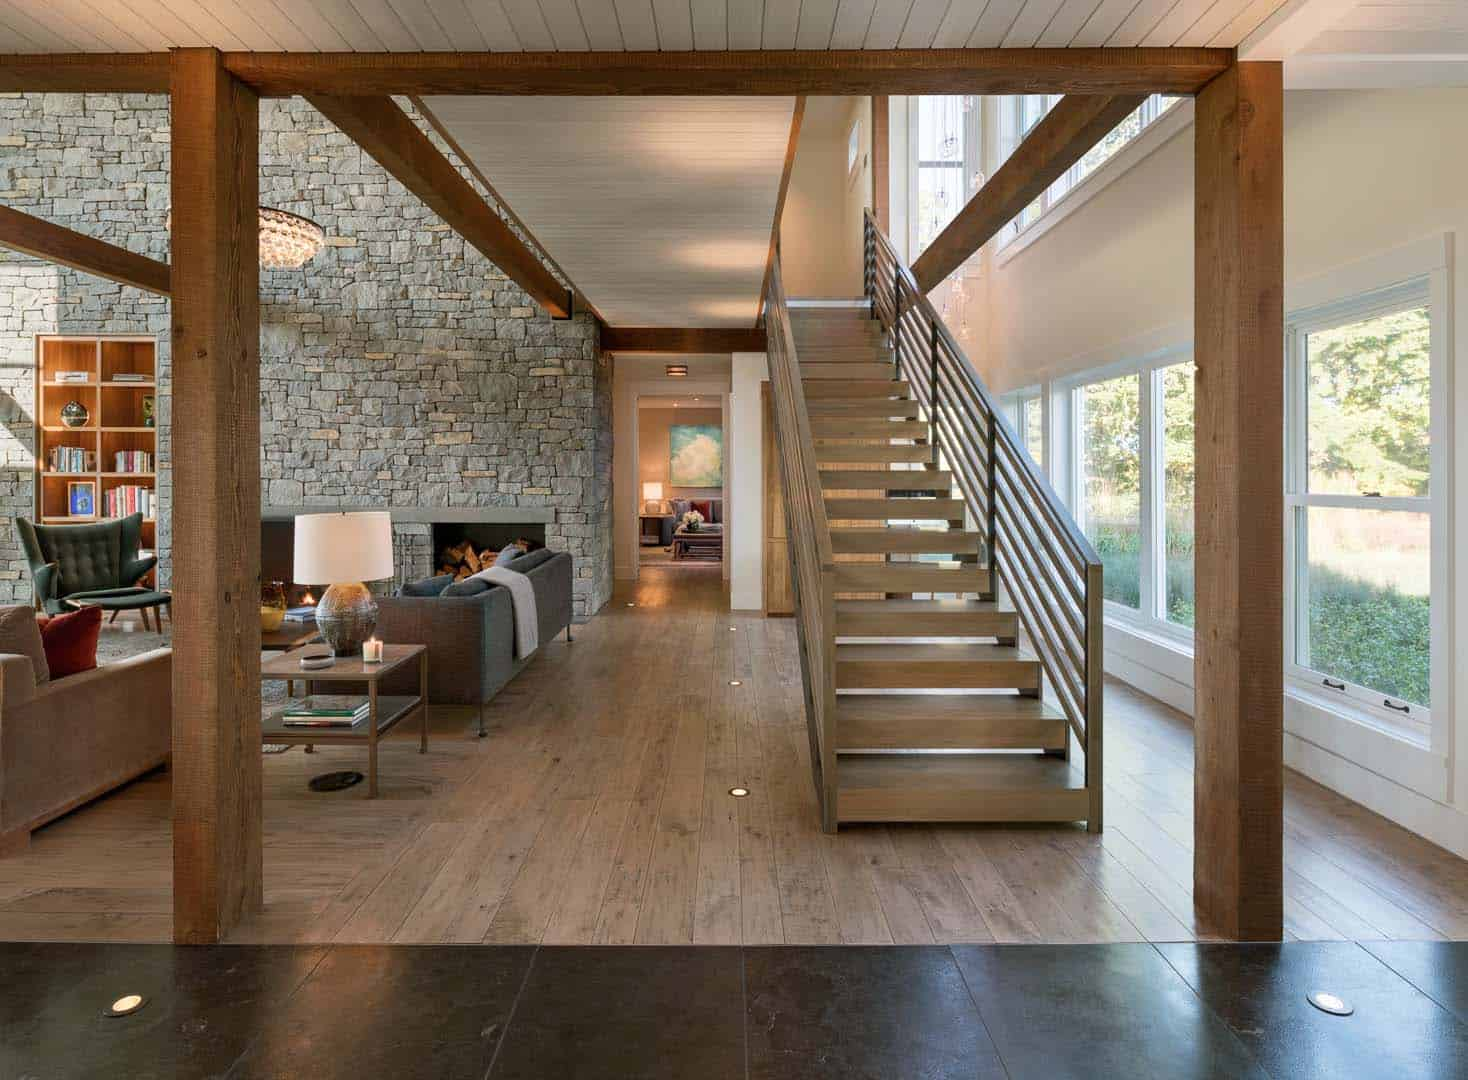 Contemporary Farmhouse Style-Rockefeller Partners Architects-07-1 Kindesign